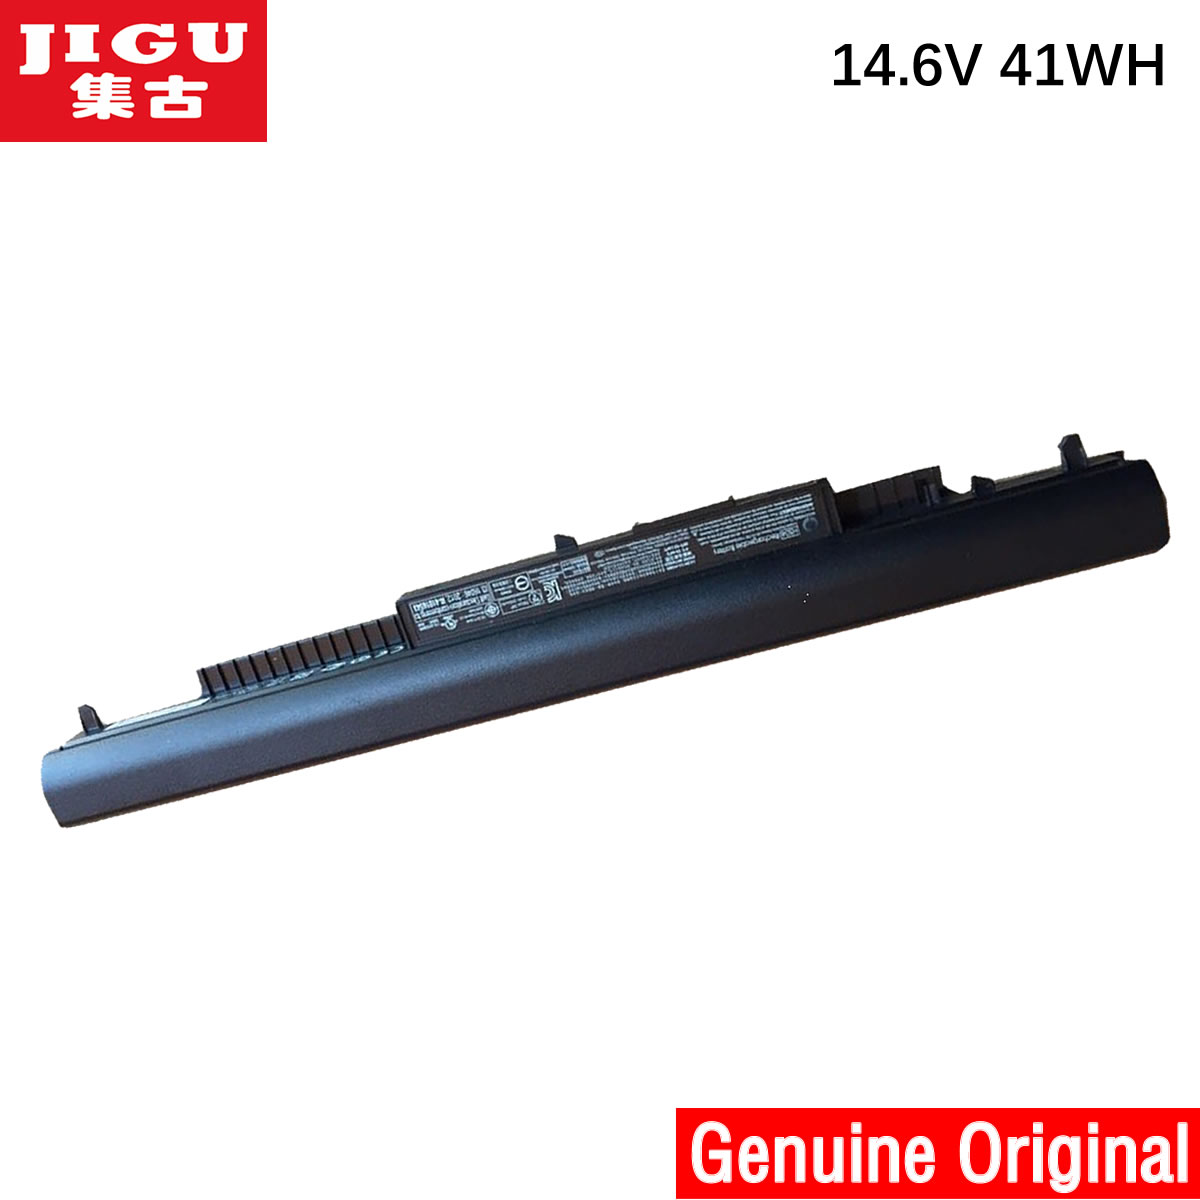 JIGU 14.6V 41WH <font><b>HS04</b></font> HS04XL HSTNN-DB7I HSTNN-IB7A LB6U N2L85AA Original Laptop Battery For HP 255 G4 256 G4 For Pavilion 14g image